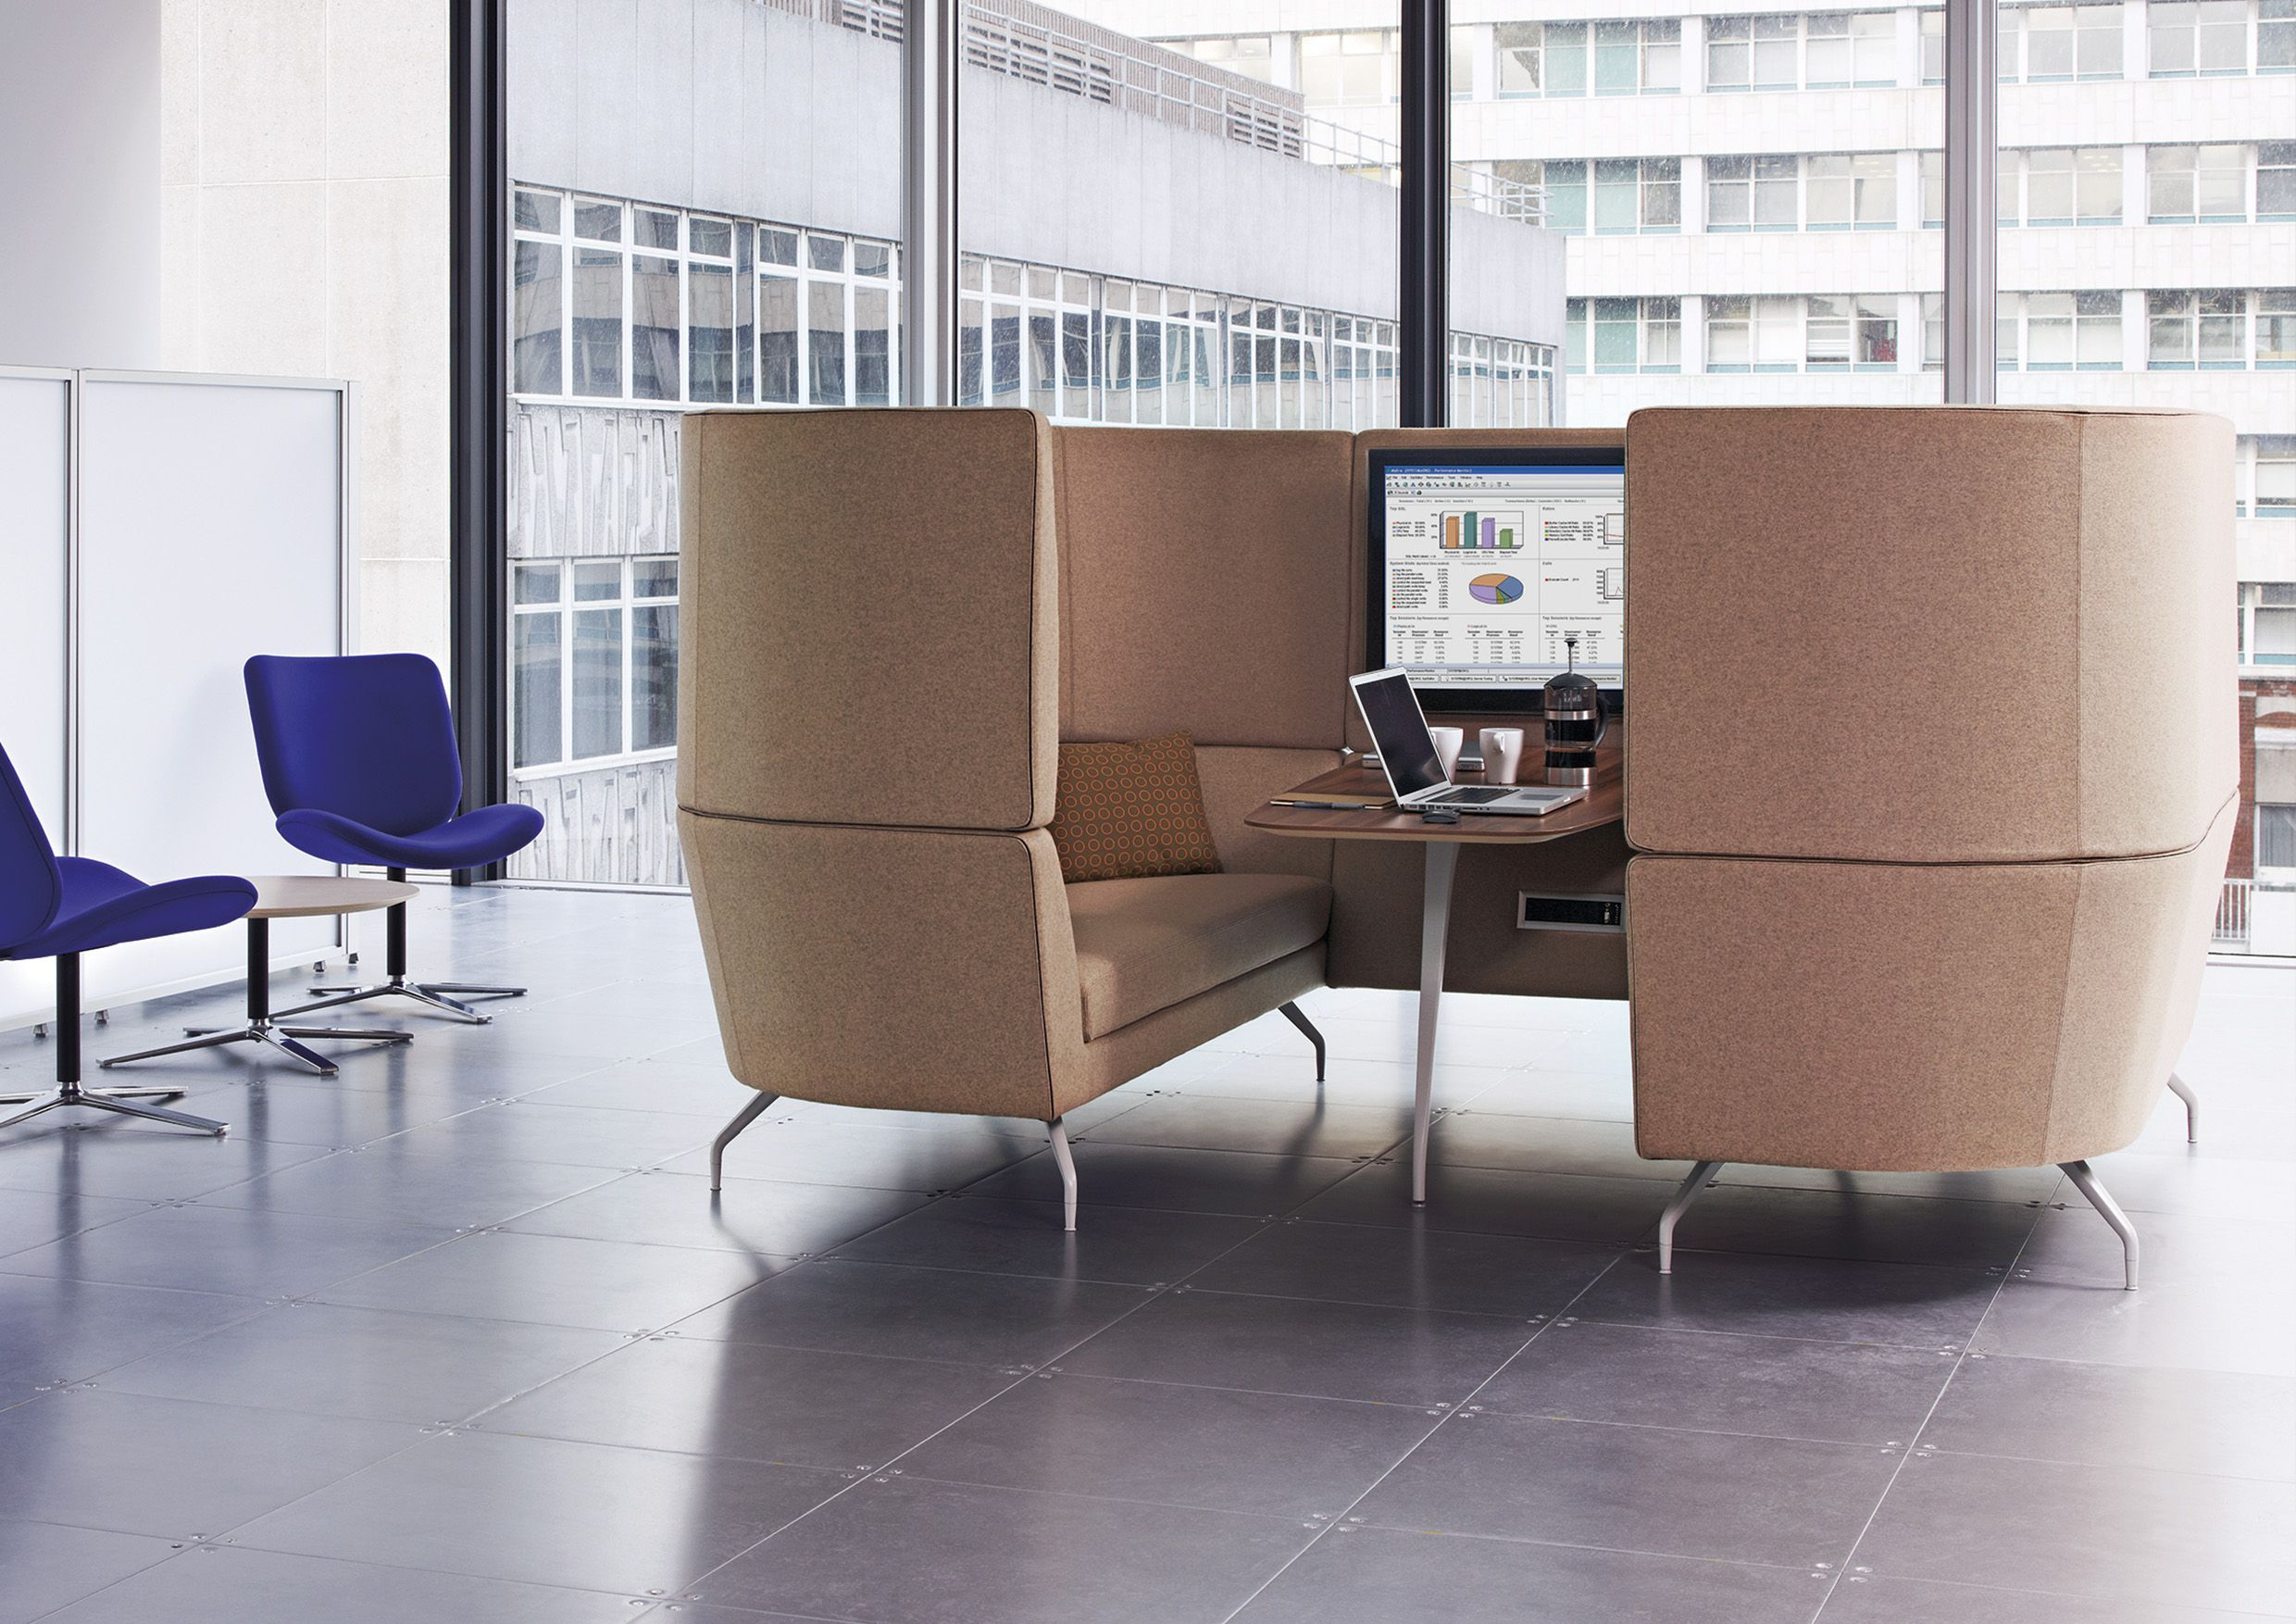 office pod furniture. Meeting Pod And Office Booth Furniture. Ideal For Open Areas Where You Can Create A Quiet Private Space Working Or Standalone Area Furniture I